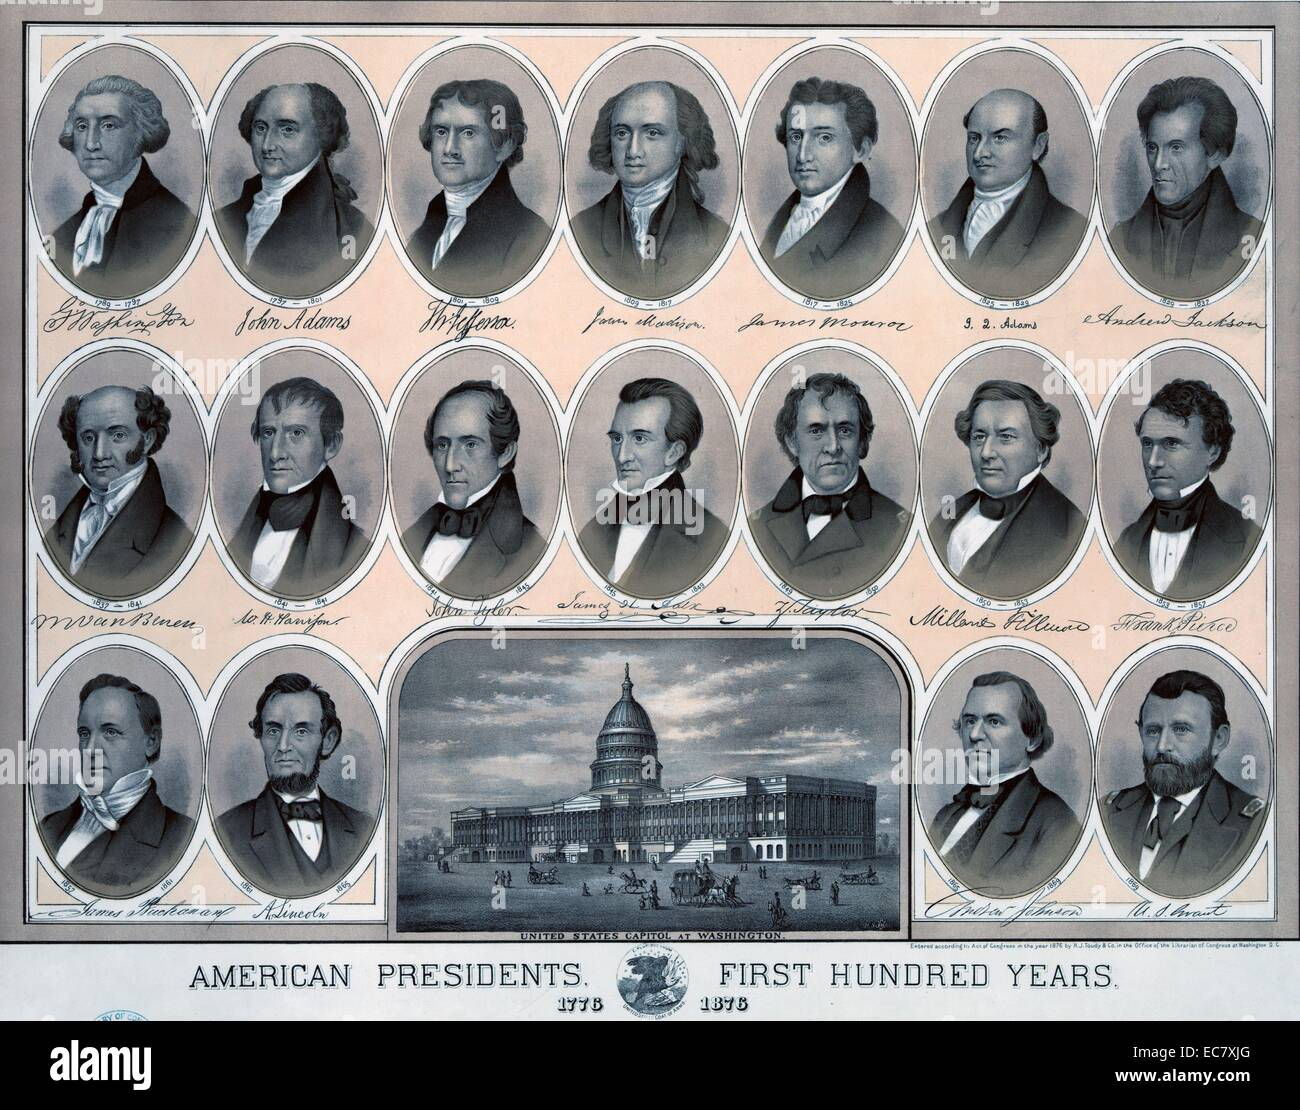 First hundred years of American Presidents - Stock Image